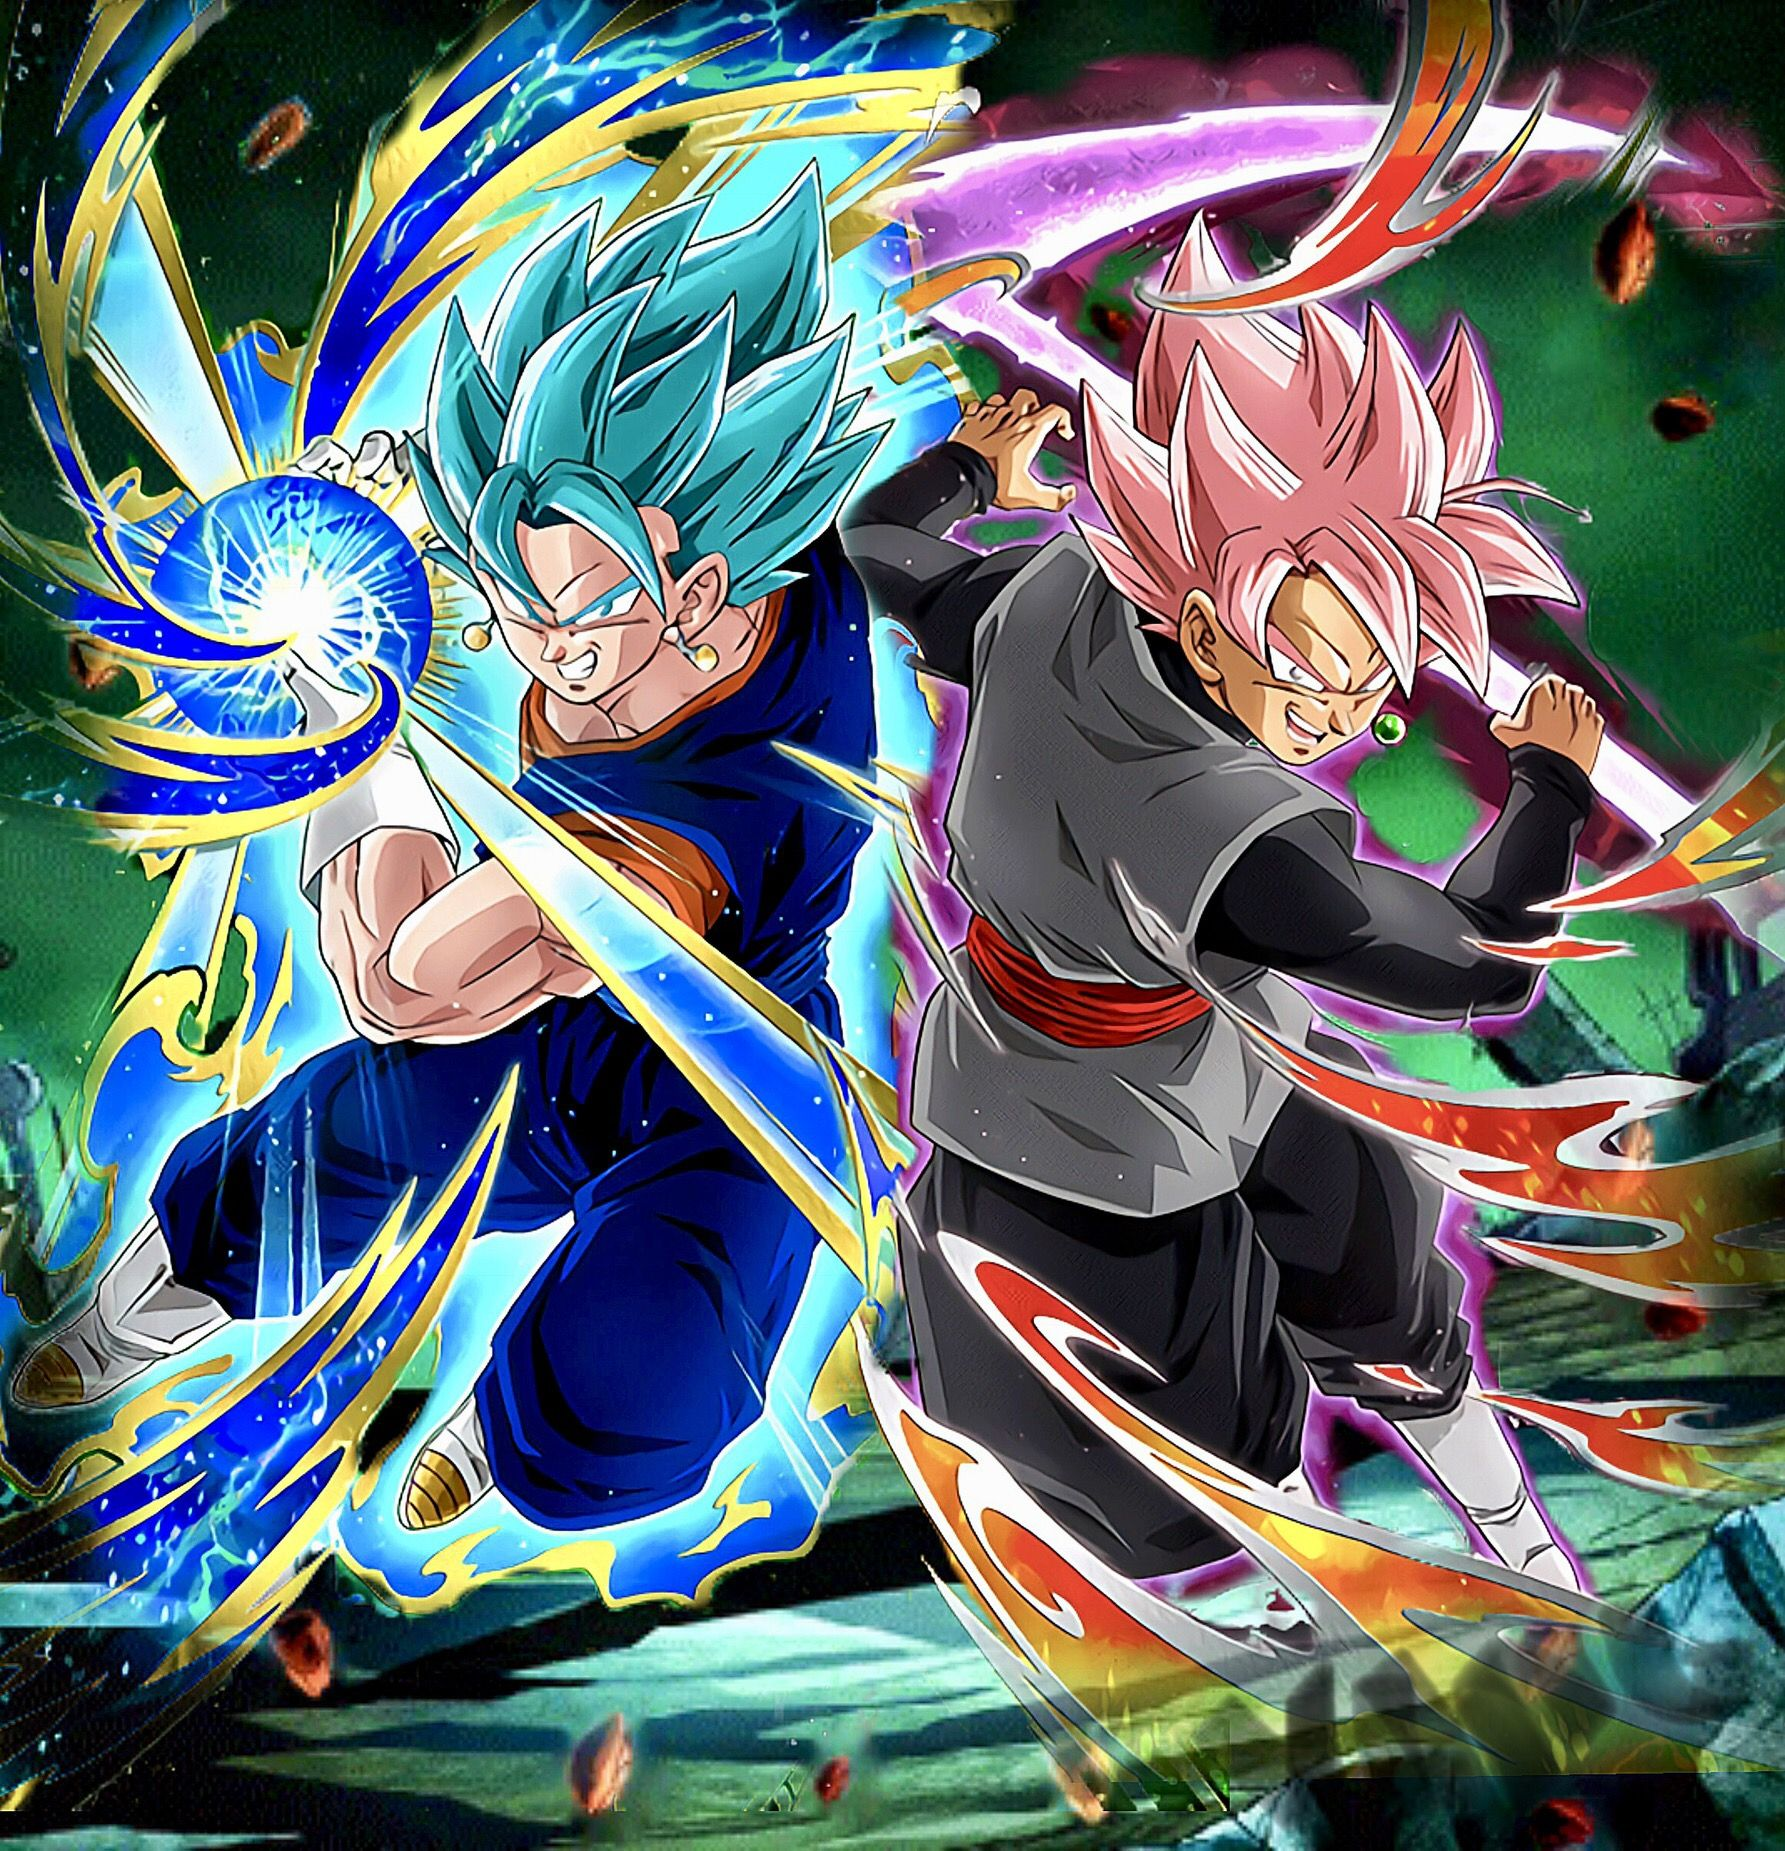 Vagetto blue v goku black ros edits dragon ball - Dbz fantasy anime ...